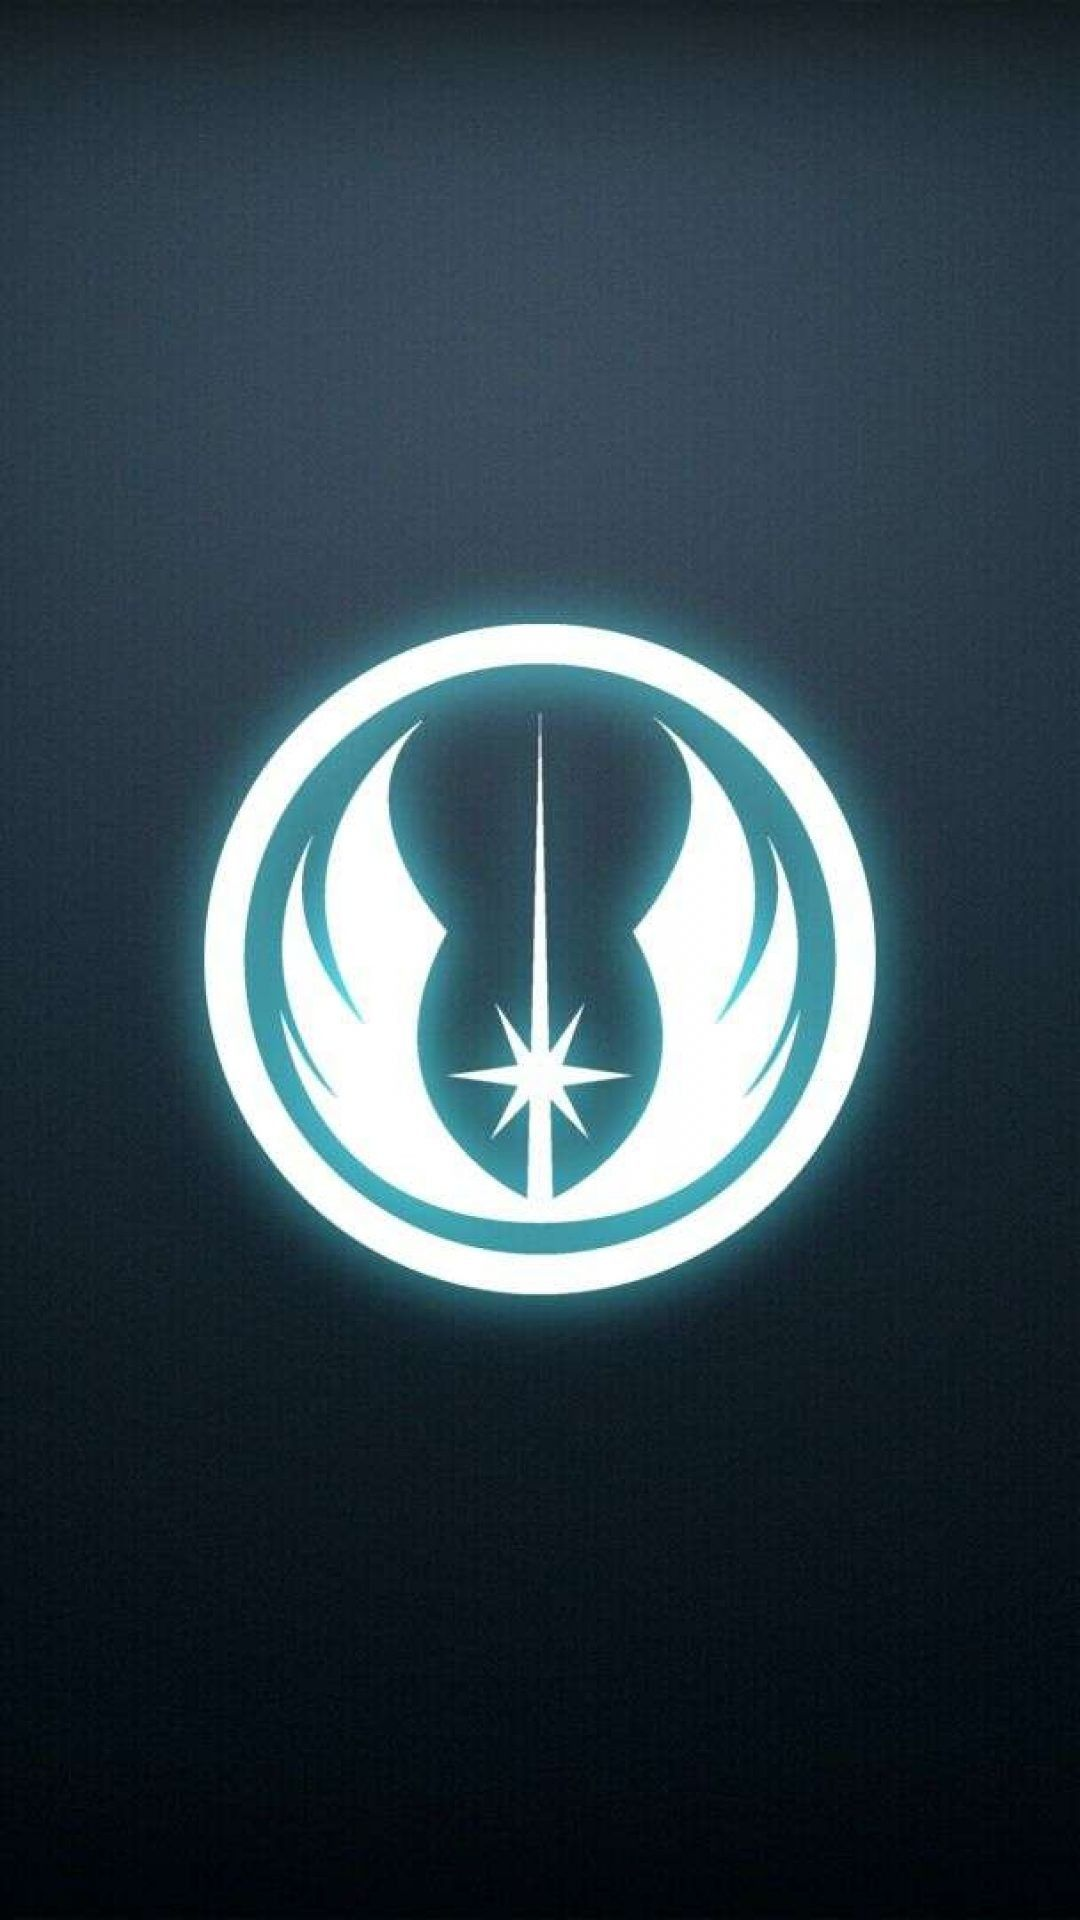 Jedi Order Wallpapers   Top Jedi Order Backgrounds 1080x1920